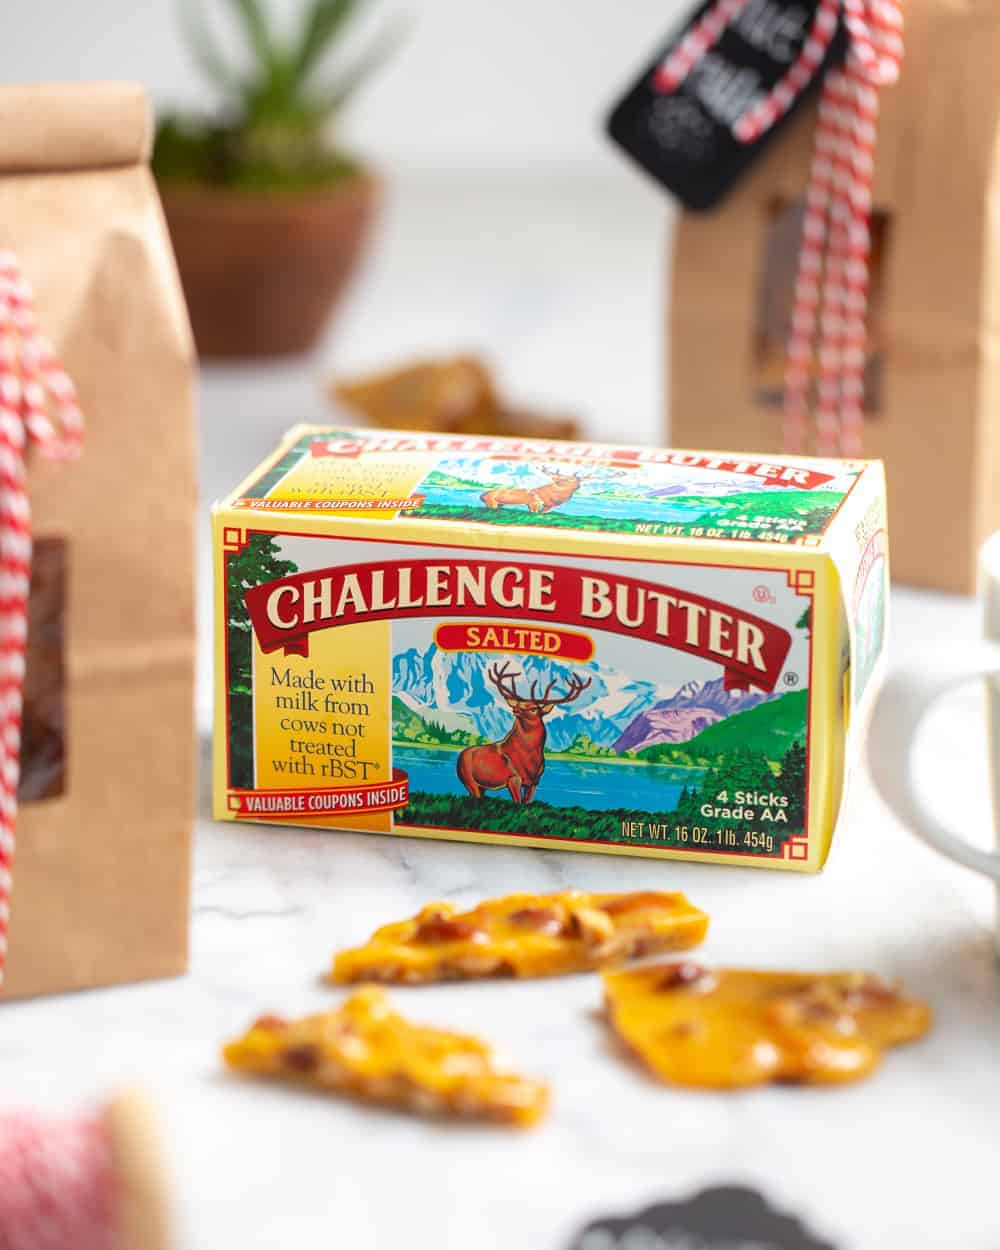 Whip up a batch of Nut Brittle to take as a hostess gift this holiday season.